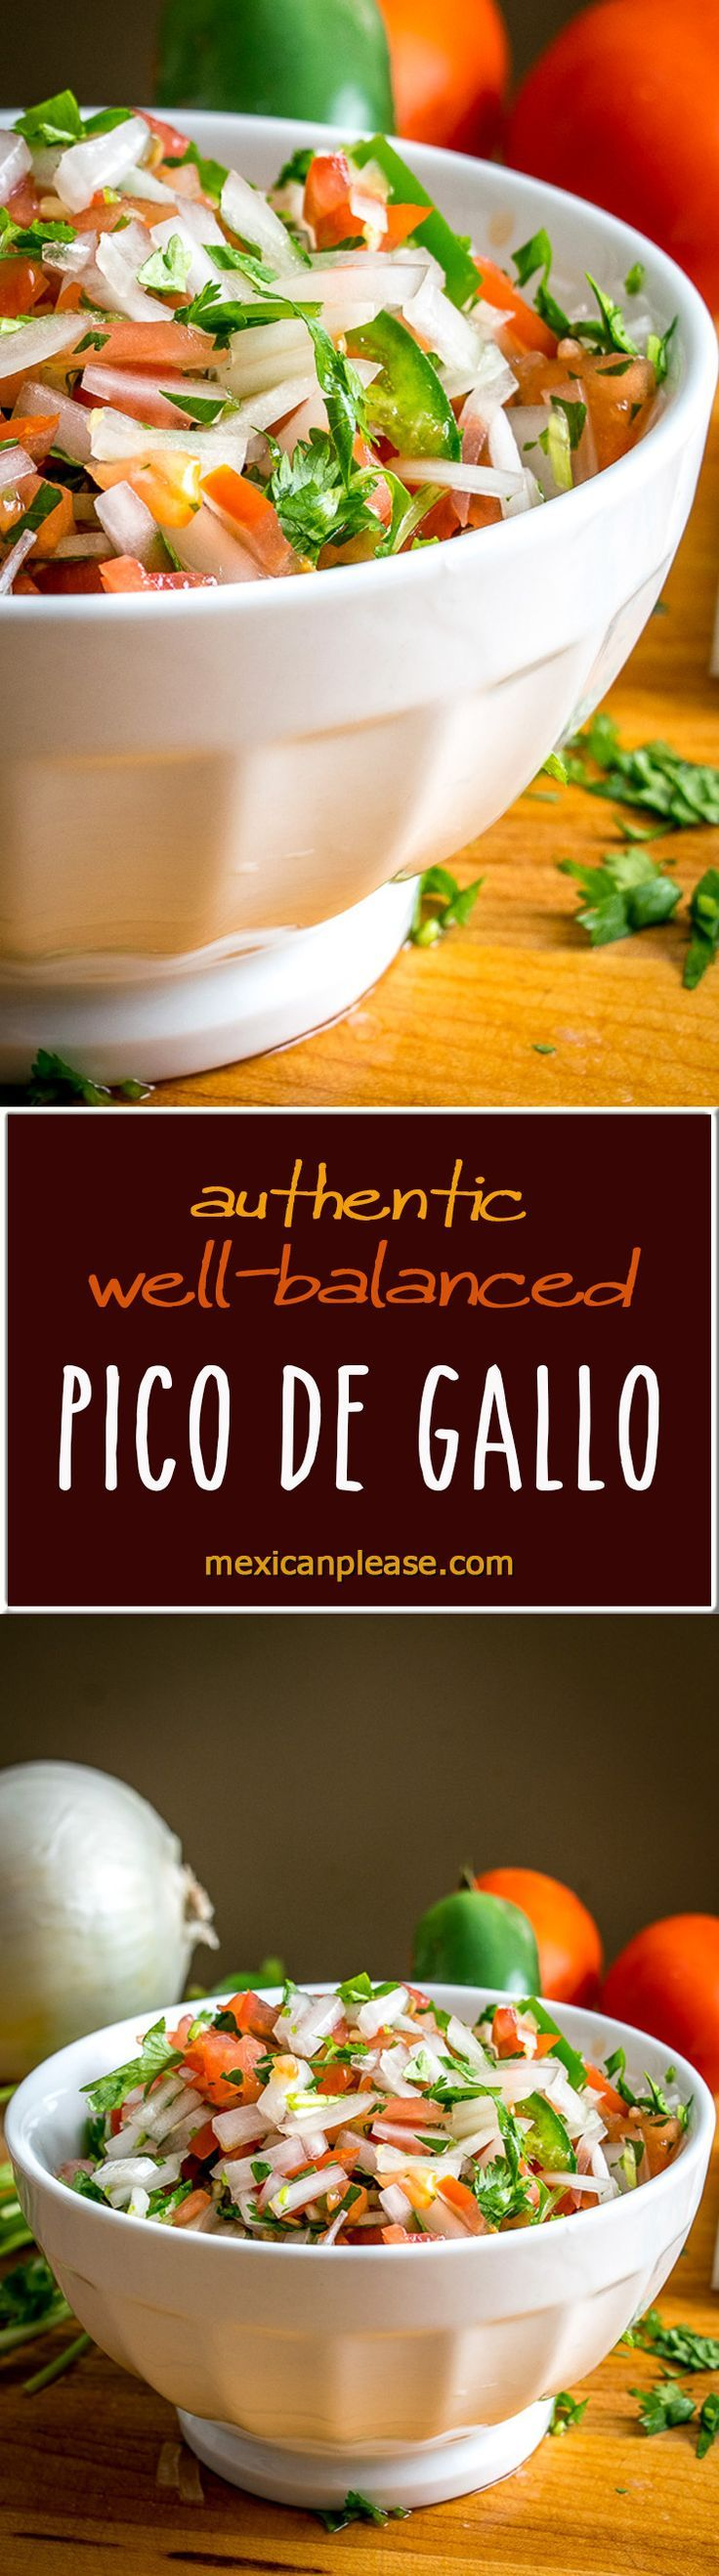 Five ingredients is all it takes to make a classic, authentic Pico de Gallo. This recipe keeps the tomatoes in check by using plenty of onion and seasoning. So good! mexicanplease.com